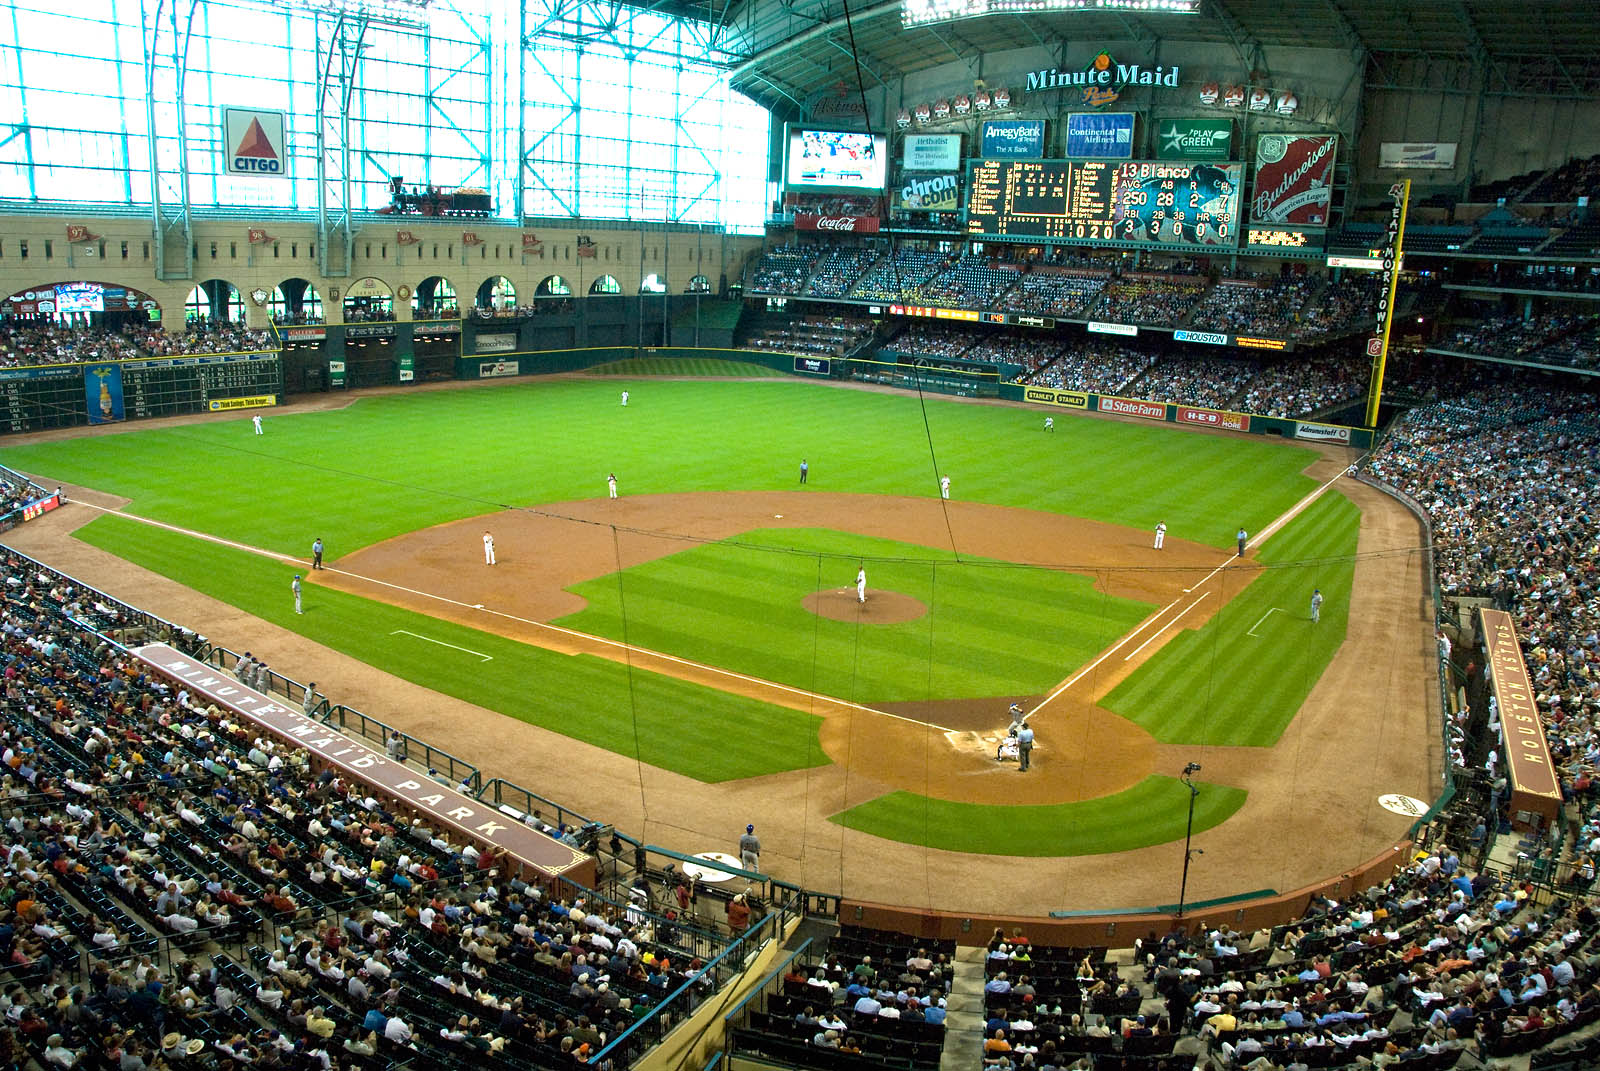 Astros Game >> The Average Cost To Attend A Houston Astros Game